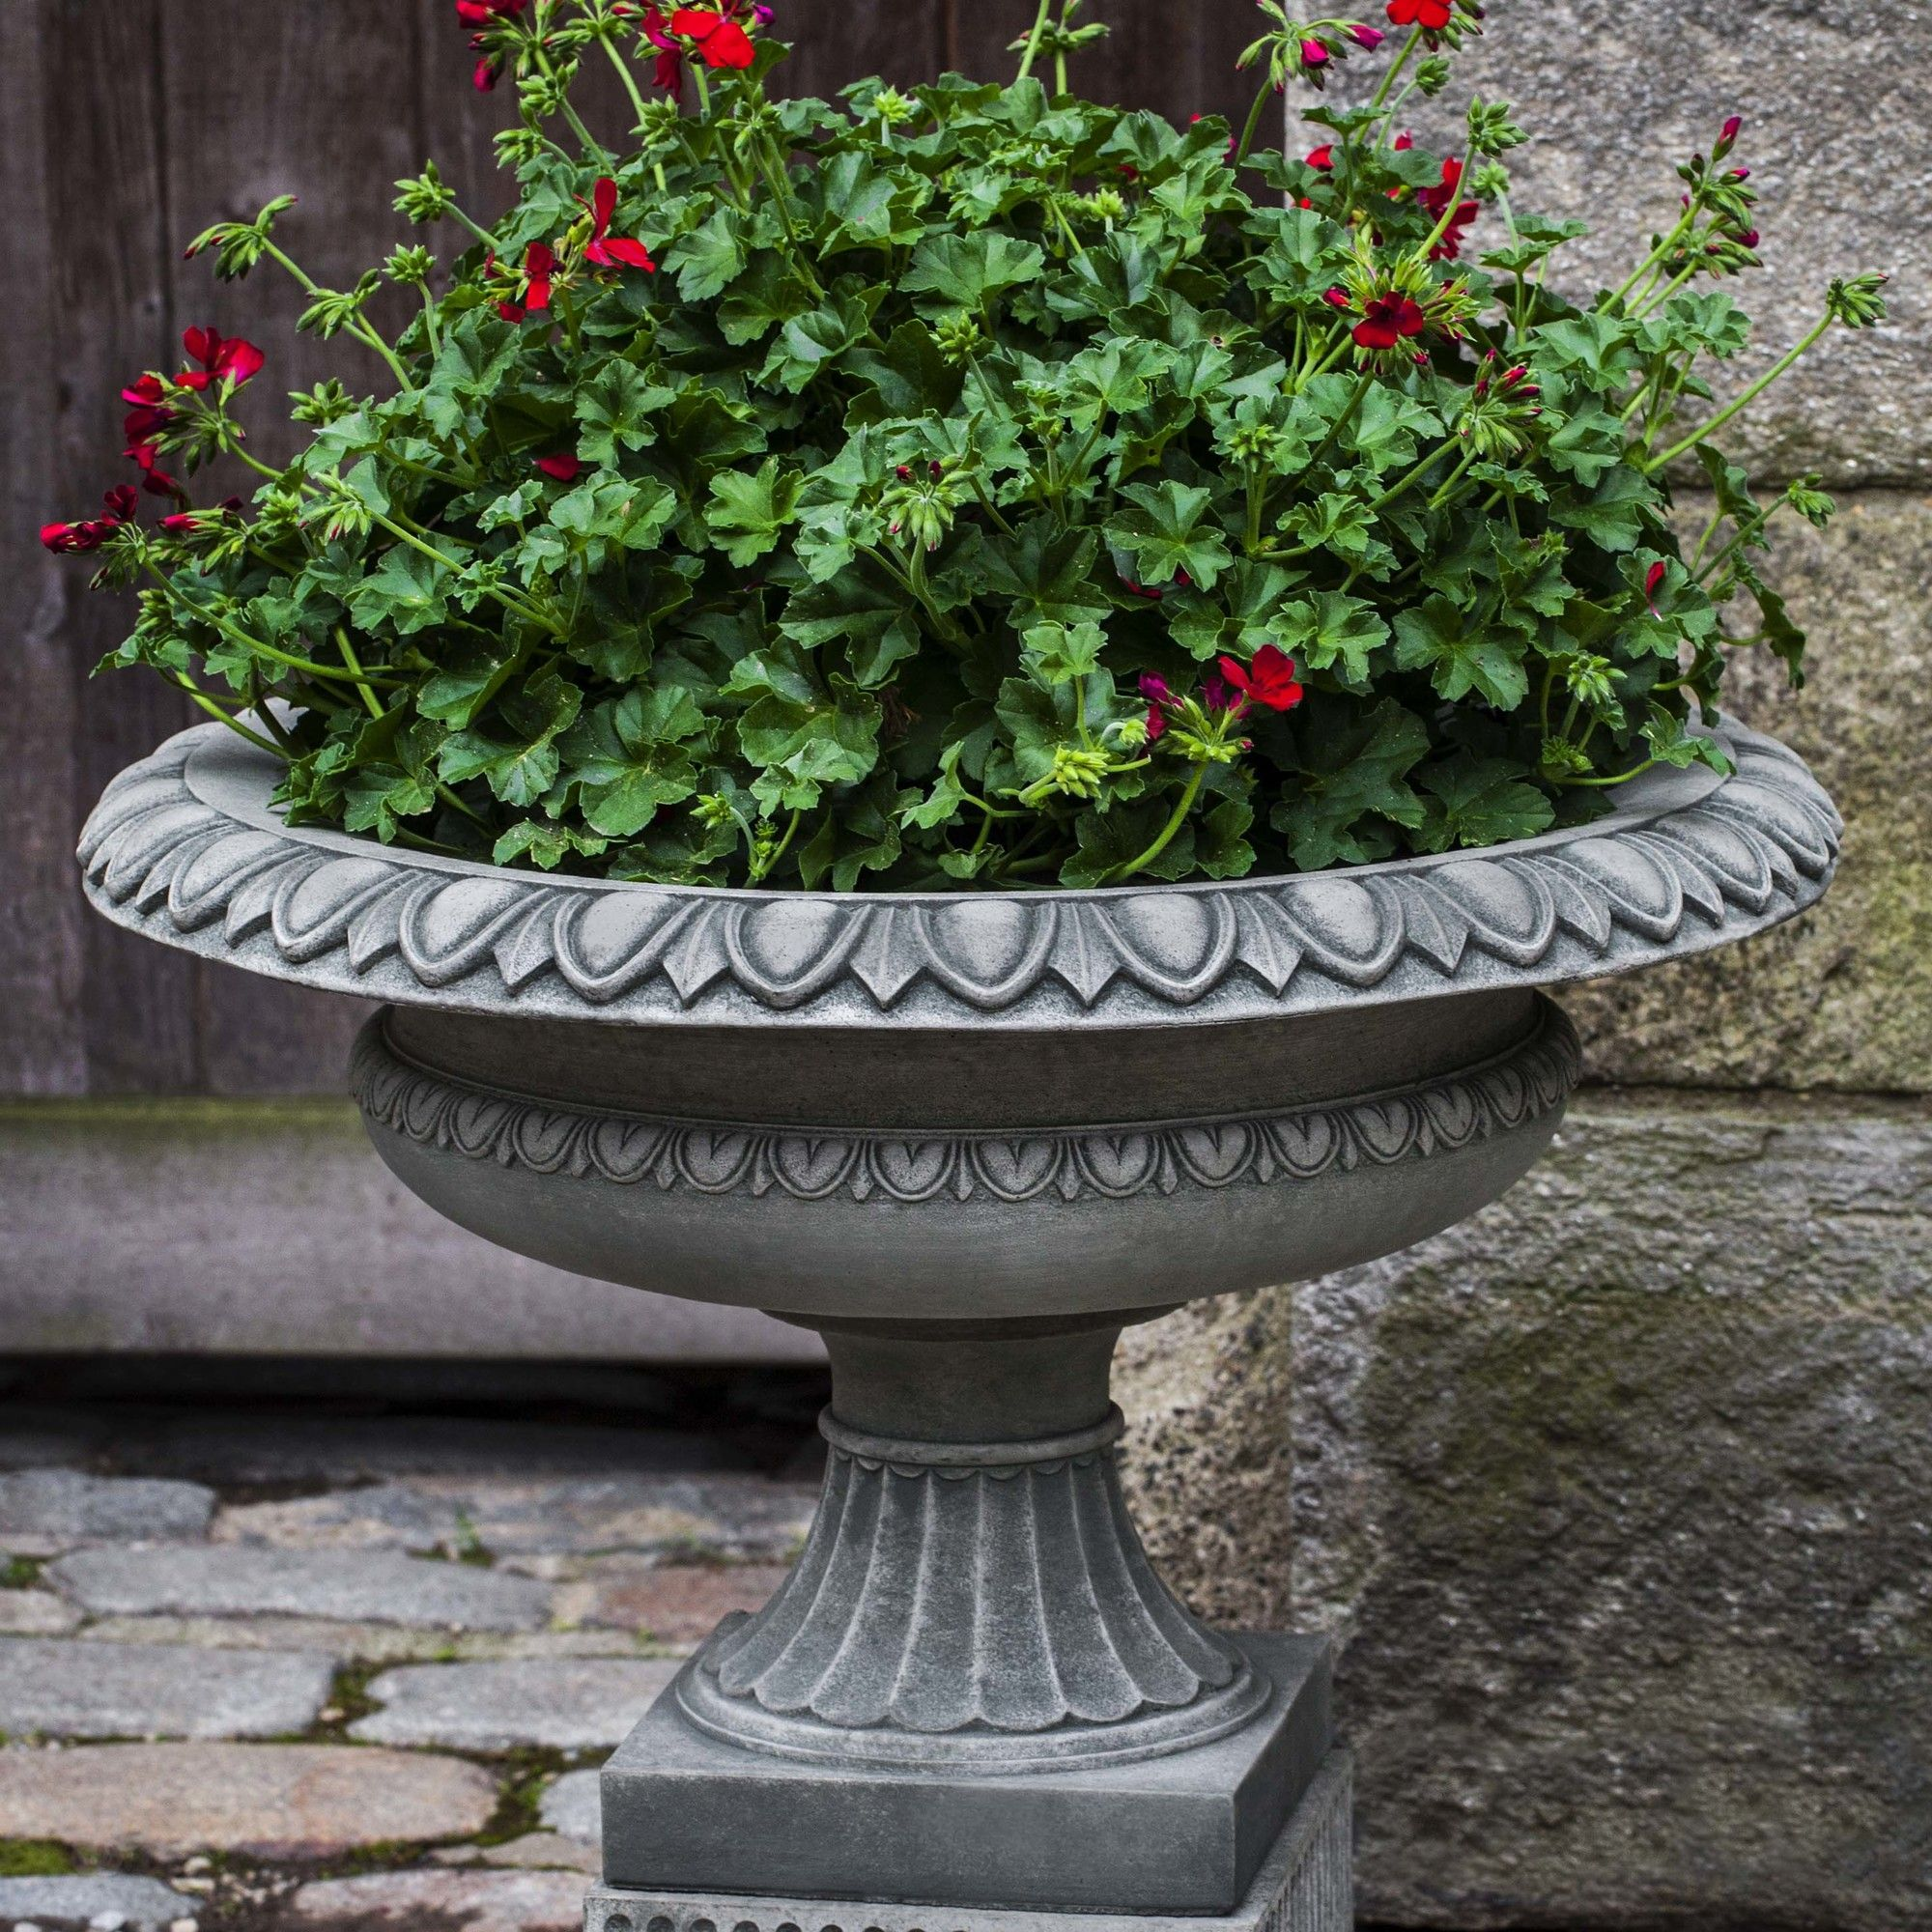 outdoor fountains cheap sale for urns ideas planter garden uk pots ashes urn large